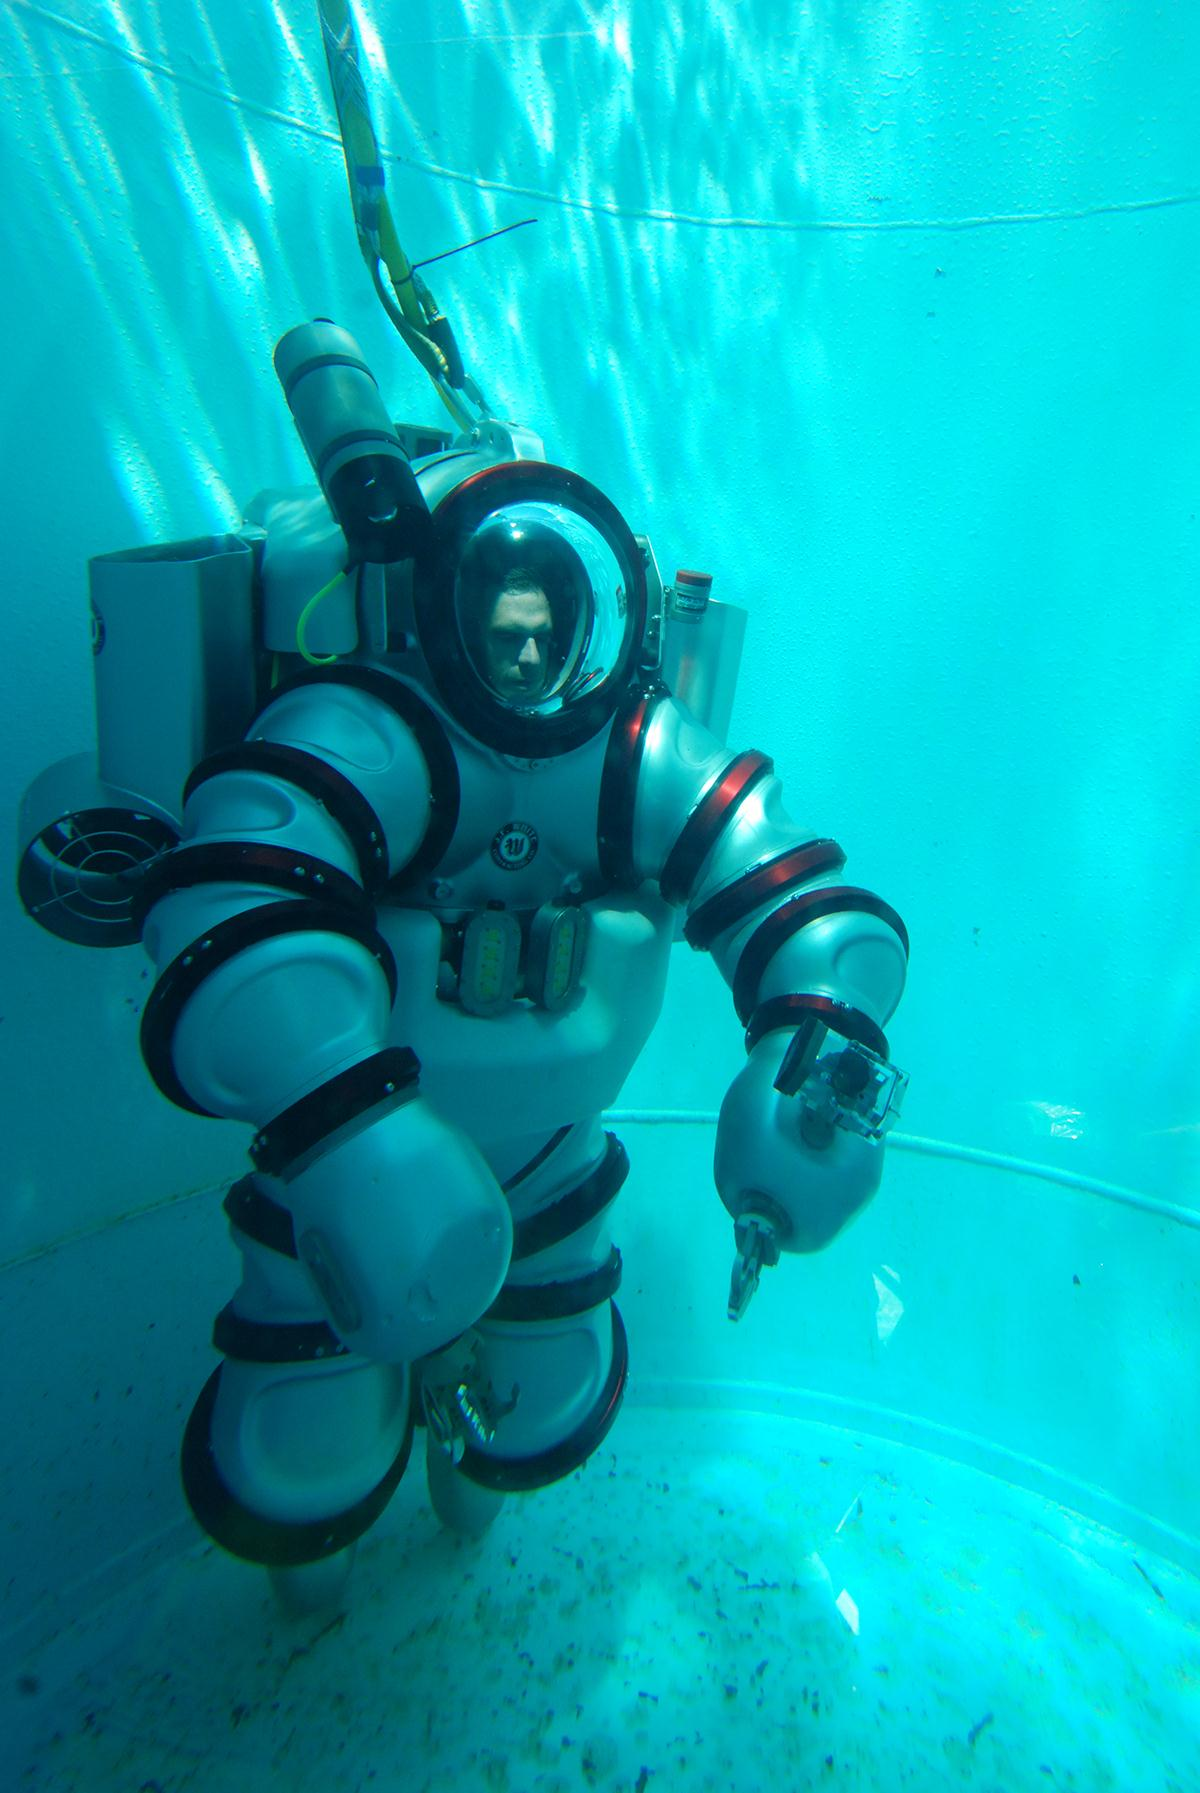 Michael Lombardi, the dive safety officer for the American Museum of Natural History and the project coordinator of the upcoming Stephen J. Barlow Bluewater Expedition, trains in the Exosuit.